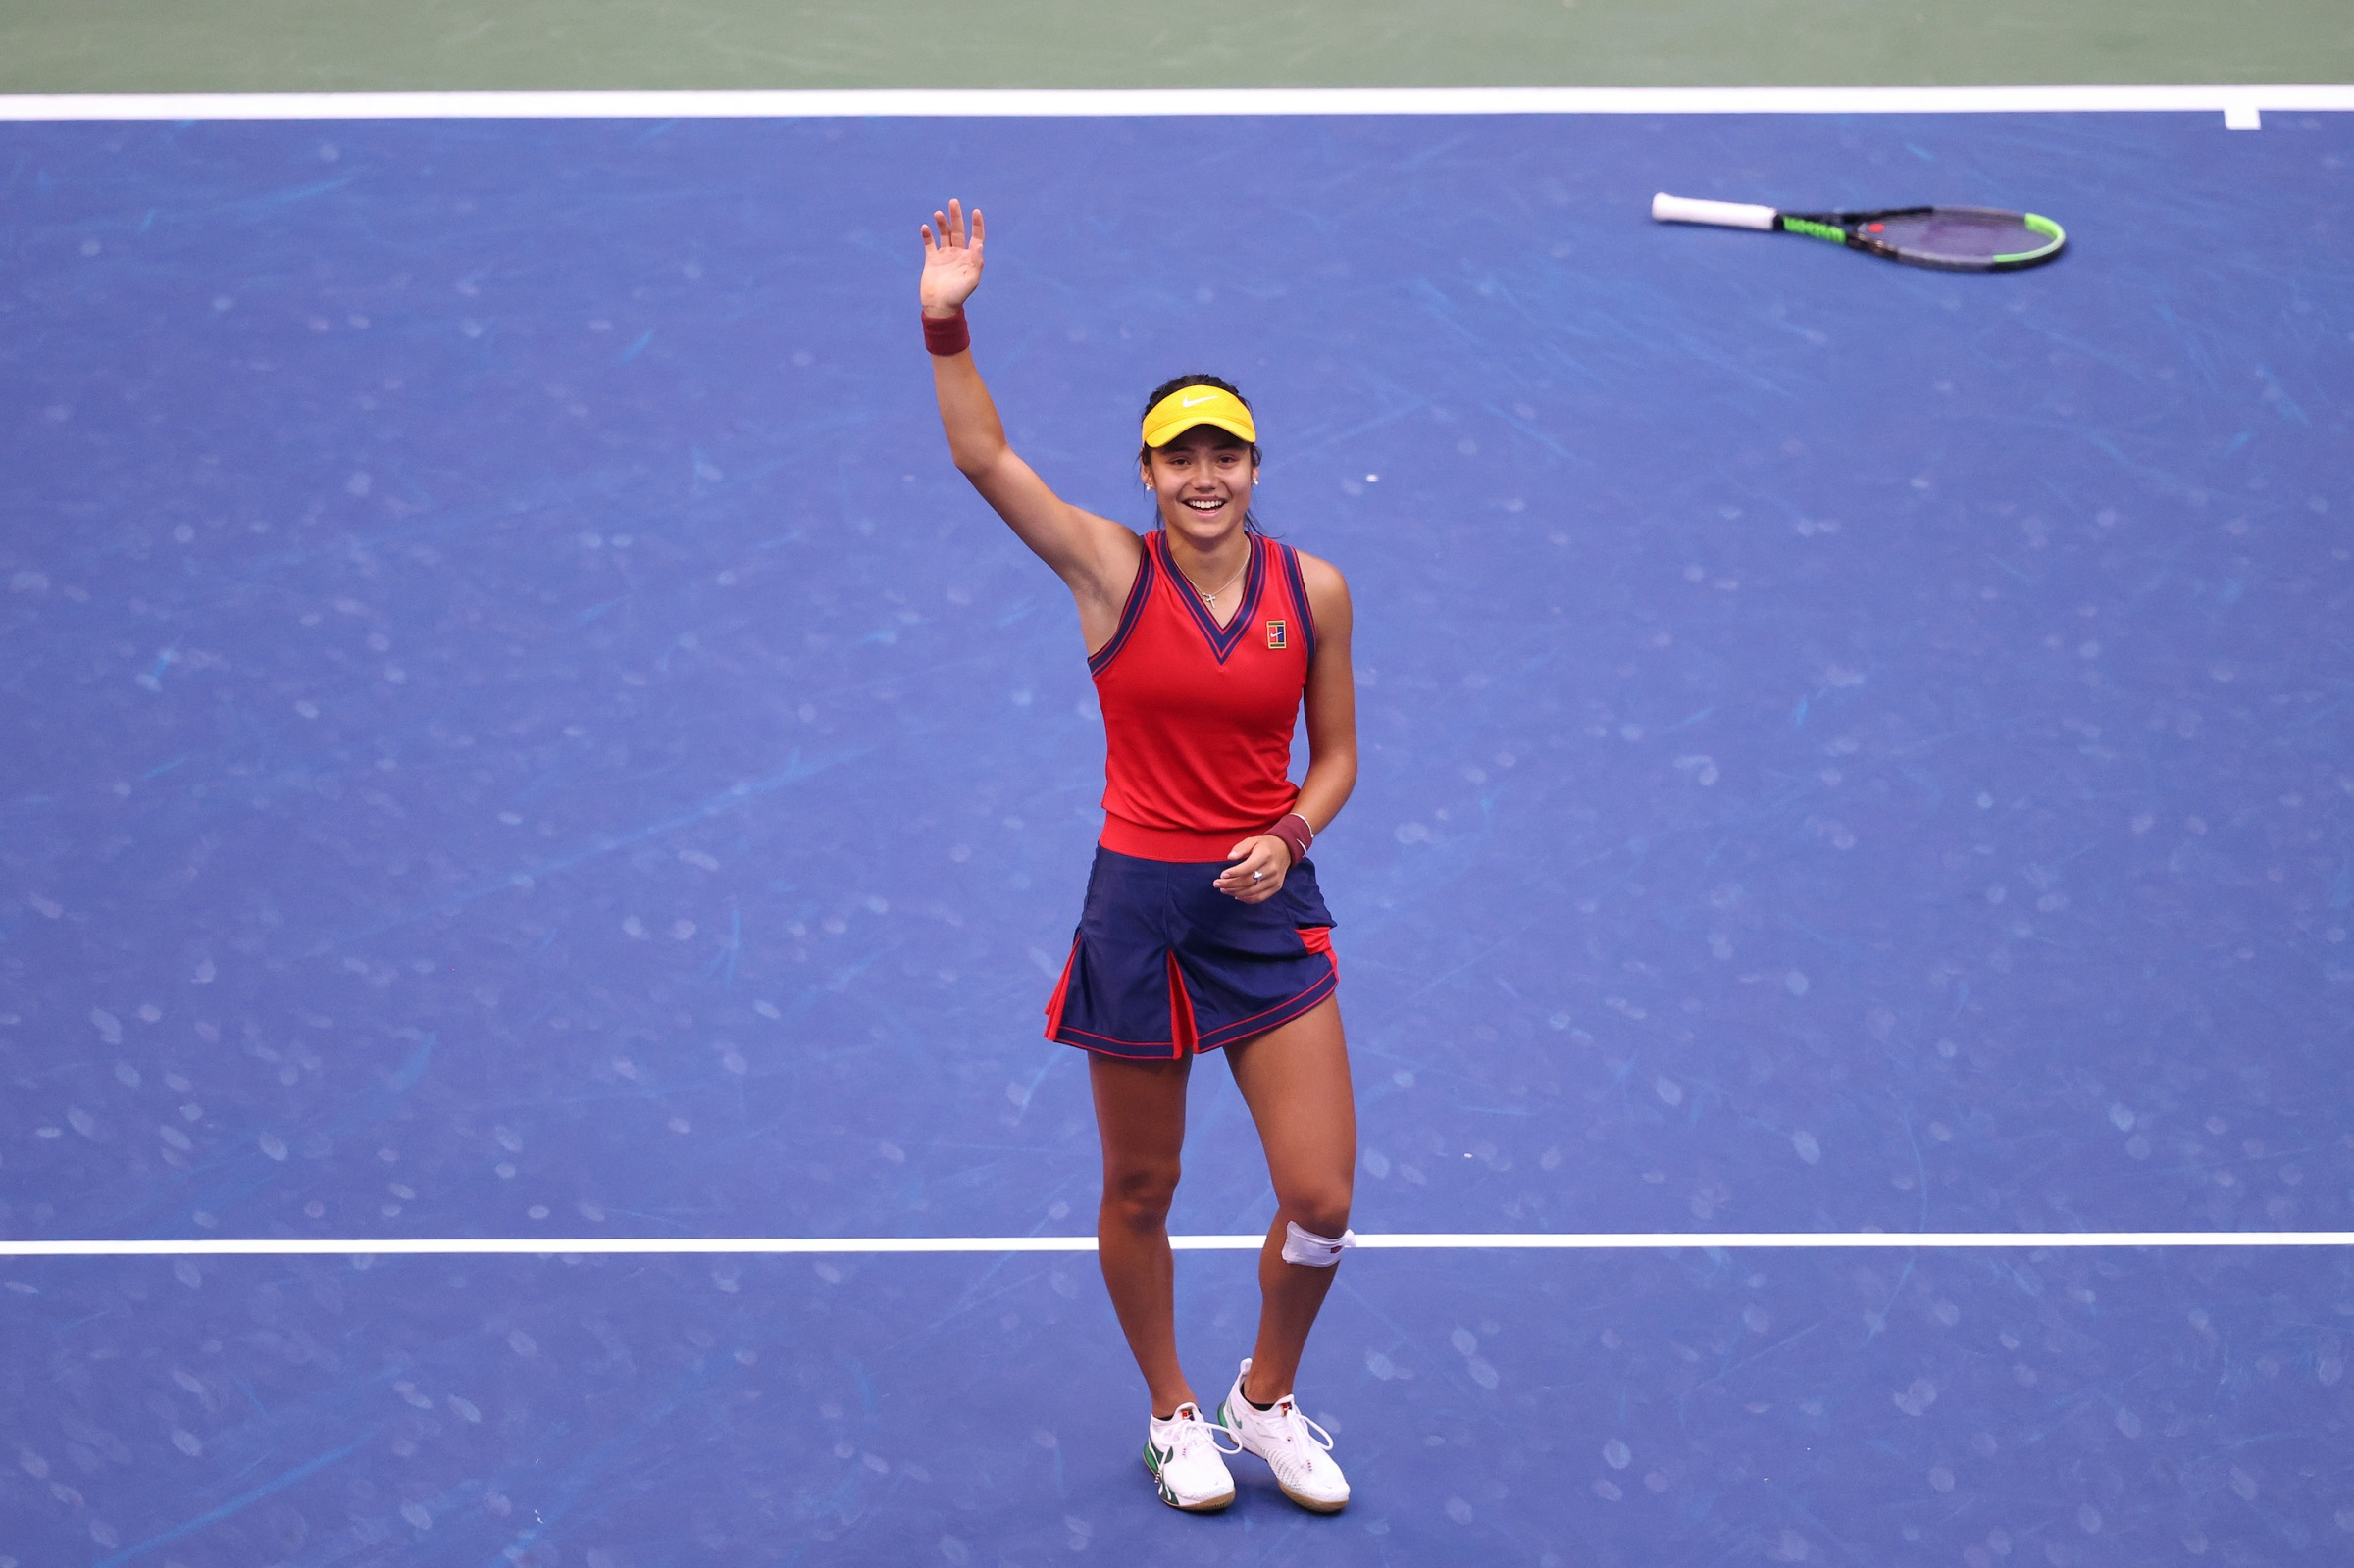 Emma Raducanu of Great Britain celebrates after winning championship point to defeat Leylah Annie Fernandez of Canada during the second set of their Women's Singles final match on Day Thirteen of the 2021 US Open at the USTA Billie Jean King National Tennis Center on September 11, 2021 in the Flushing neighborhood of the Queens borough of New York City.